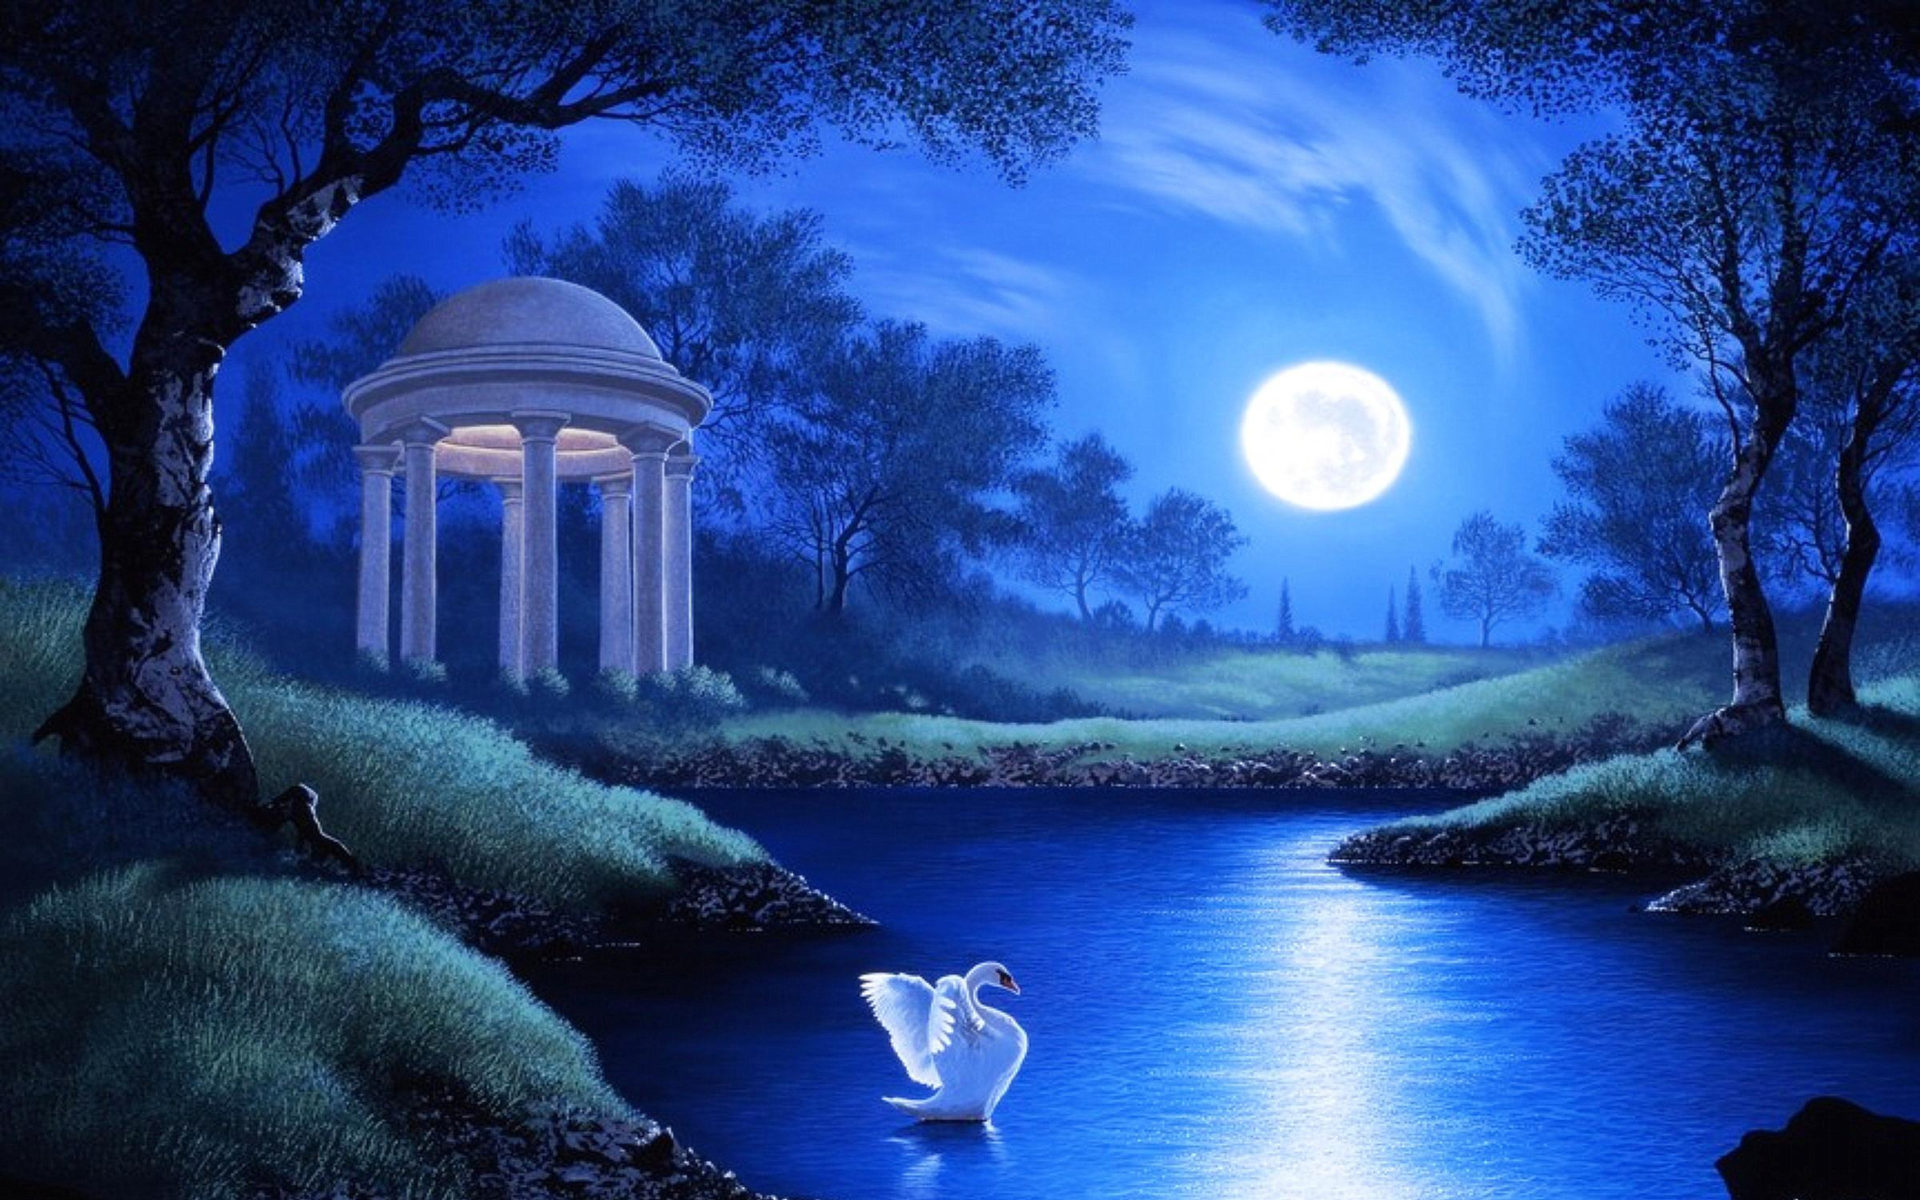 Wallpaper 3d Moving Cars Swan Lake Night Full Moon Trees Grass Hd Wallpaper